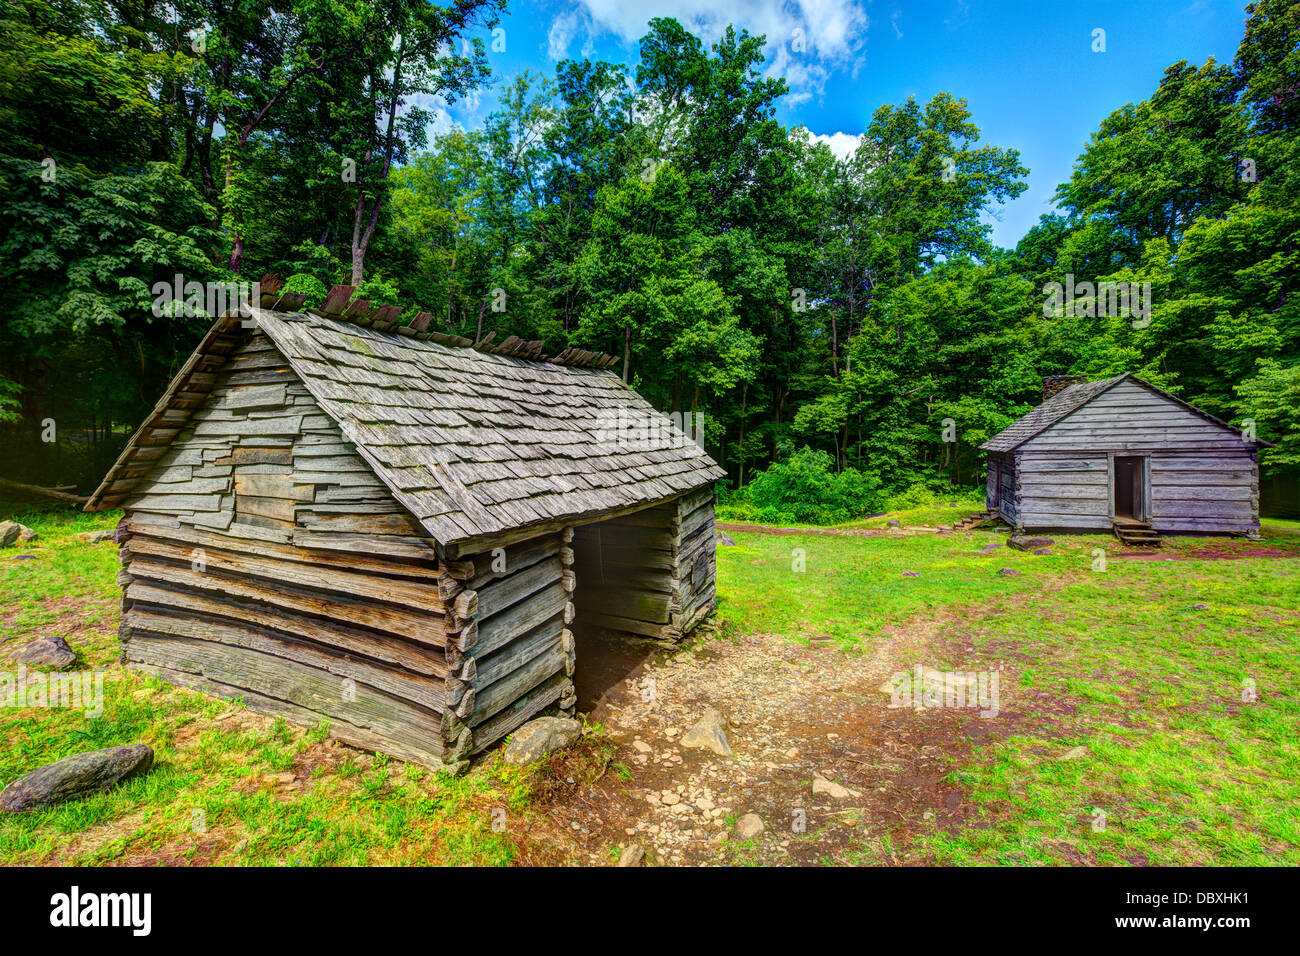 Log cabins at Roaring Fork Motor Trail in Great Smoky Mountains National Forest. - Stock Image